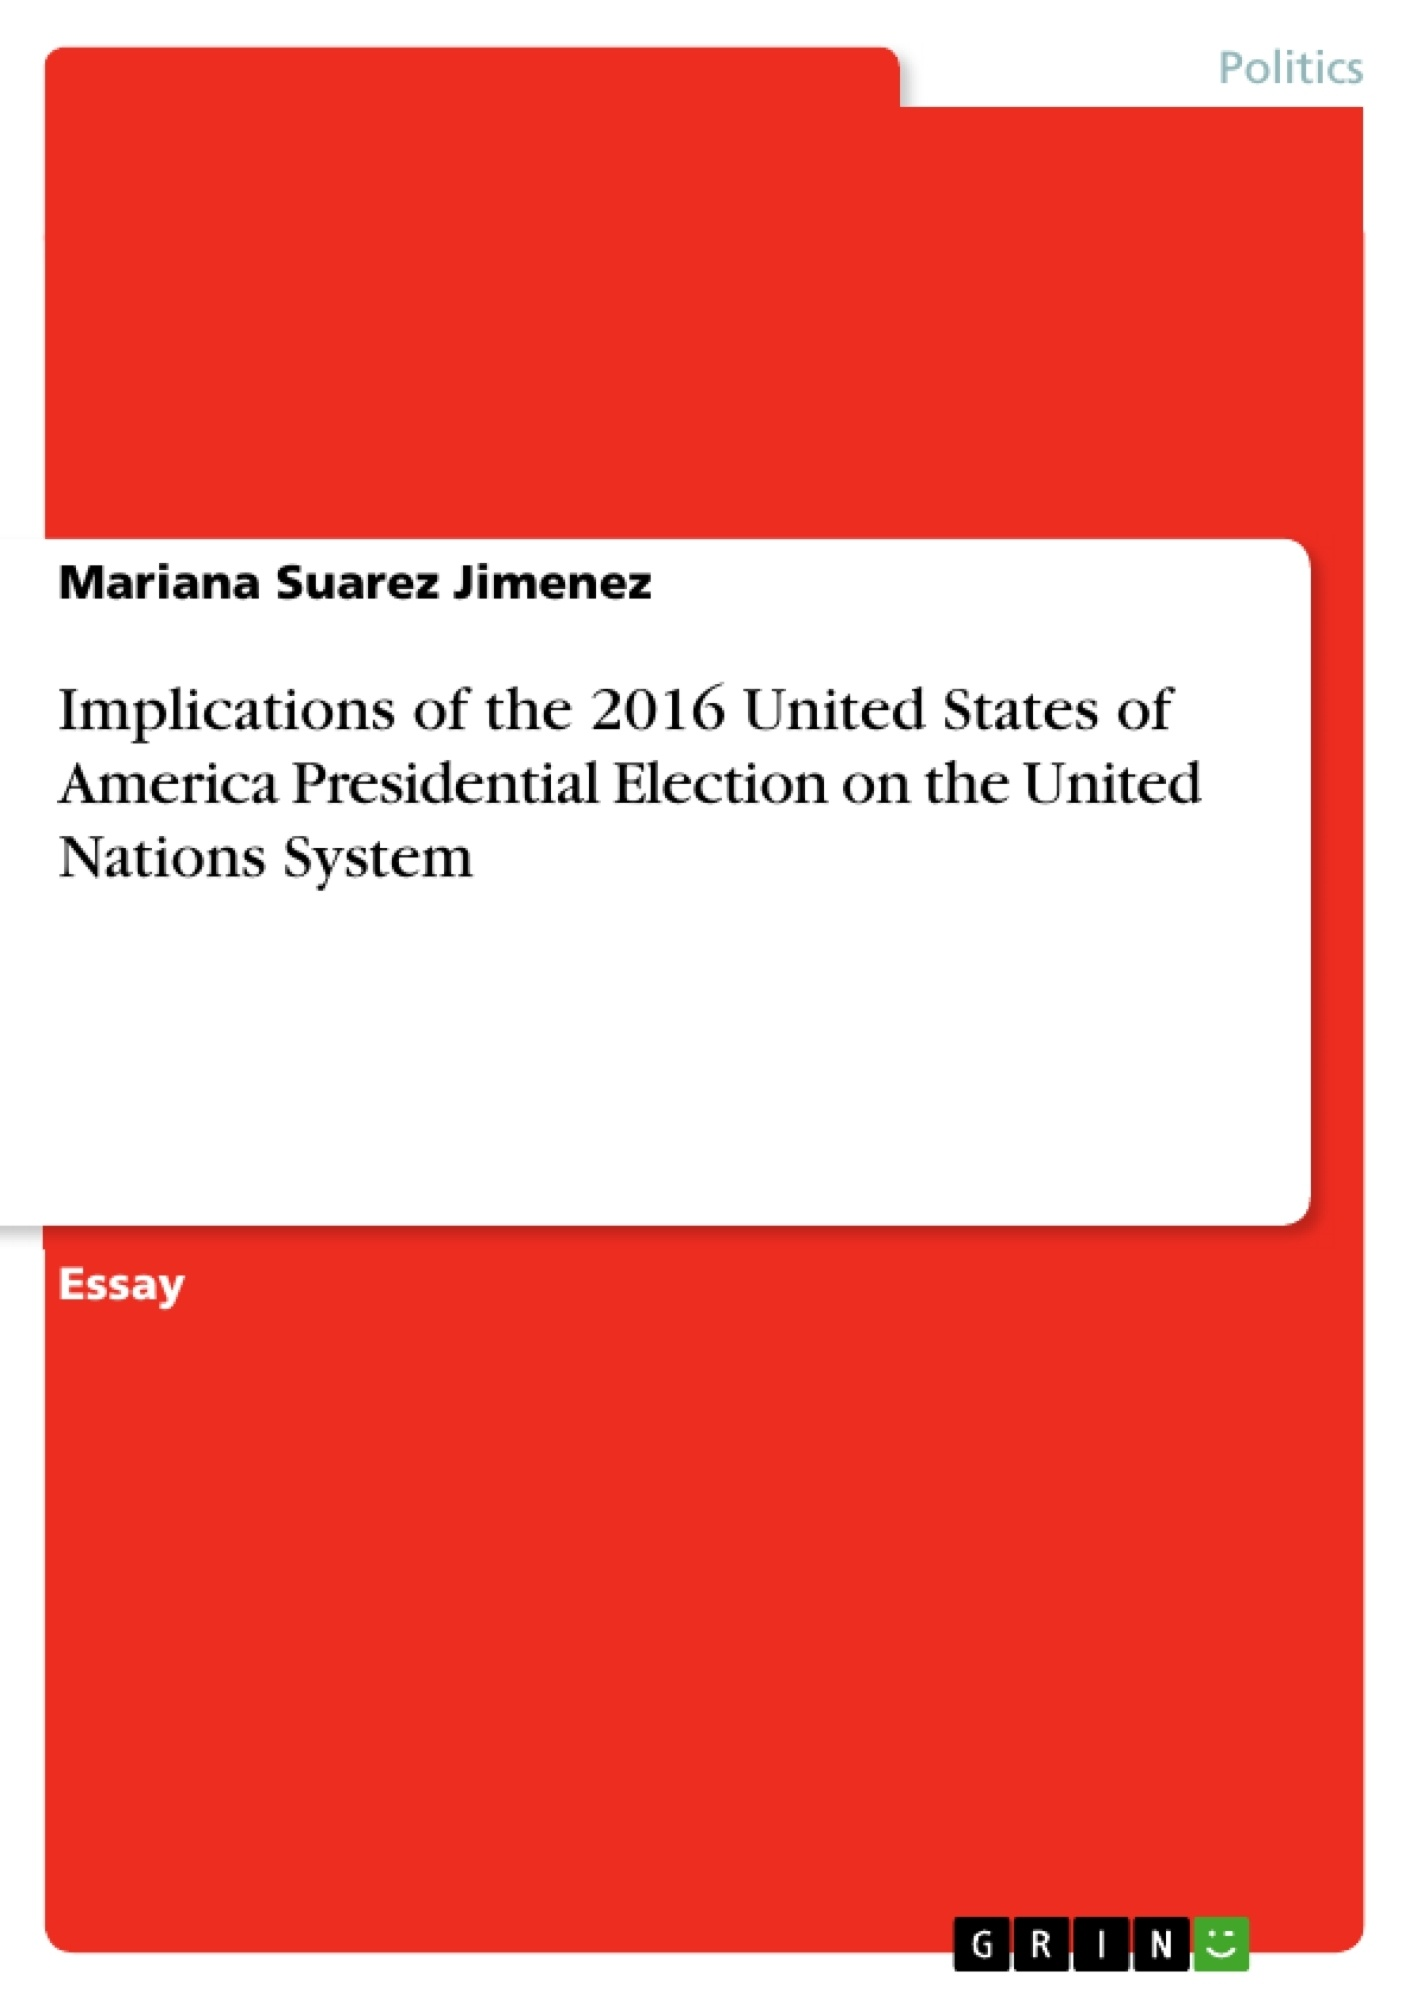 Title: Implications of the 2016 United States of America Presidential Election on the United Nations System